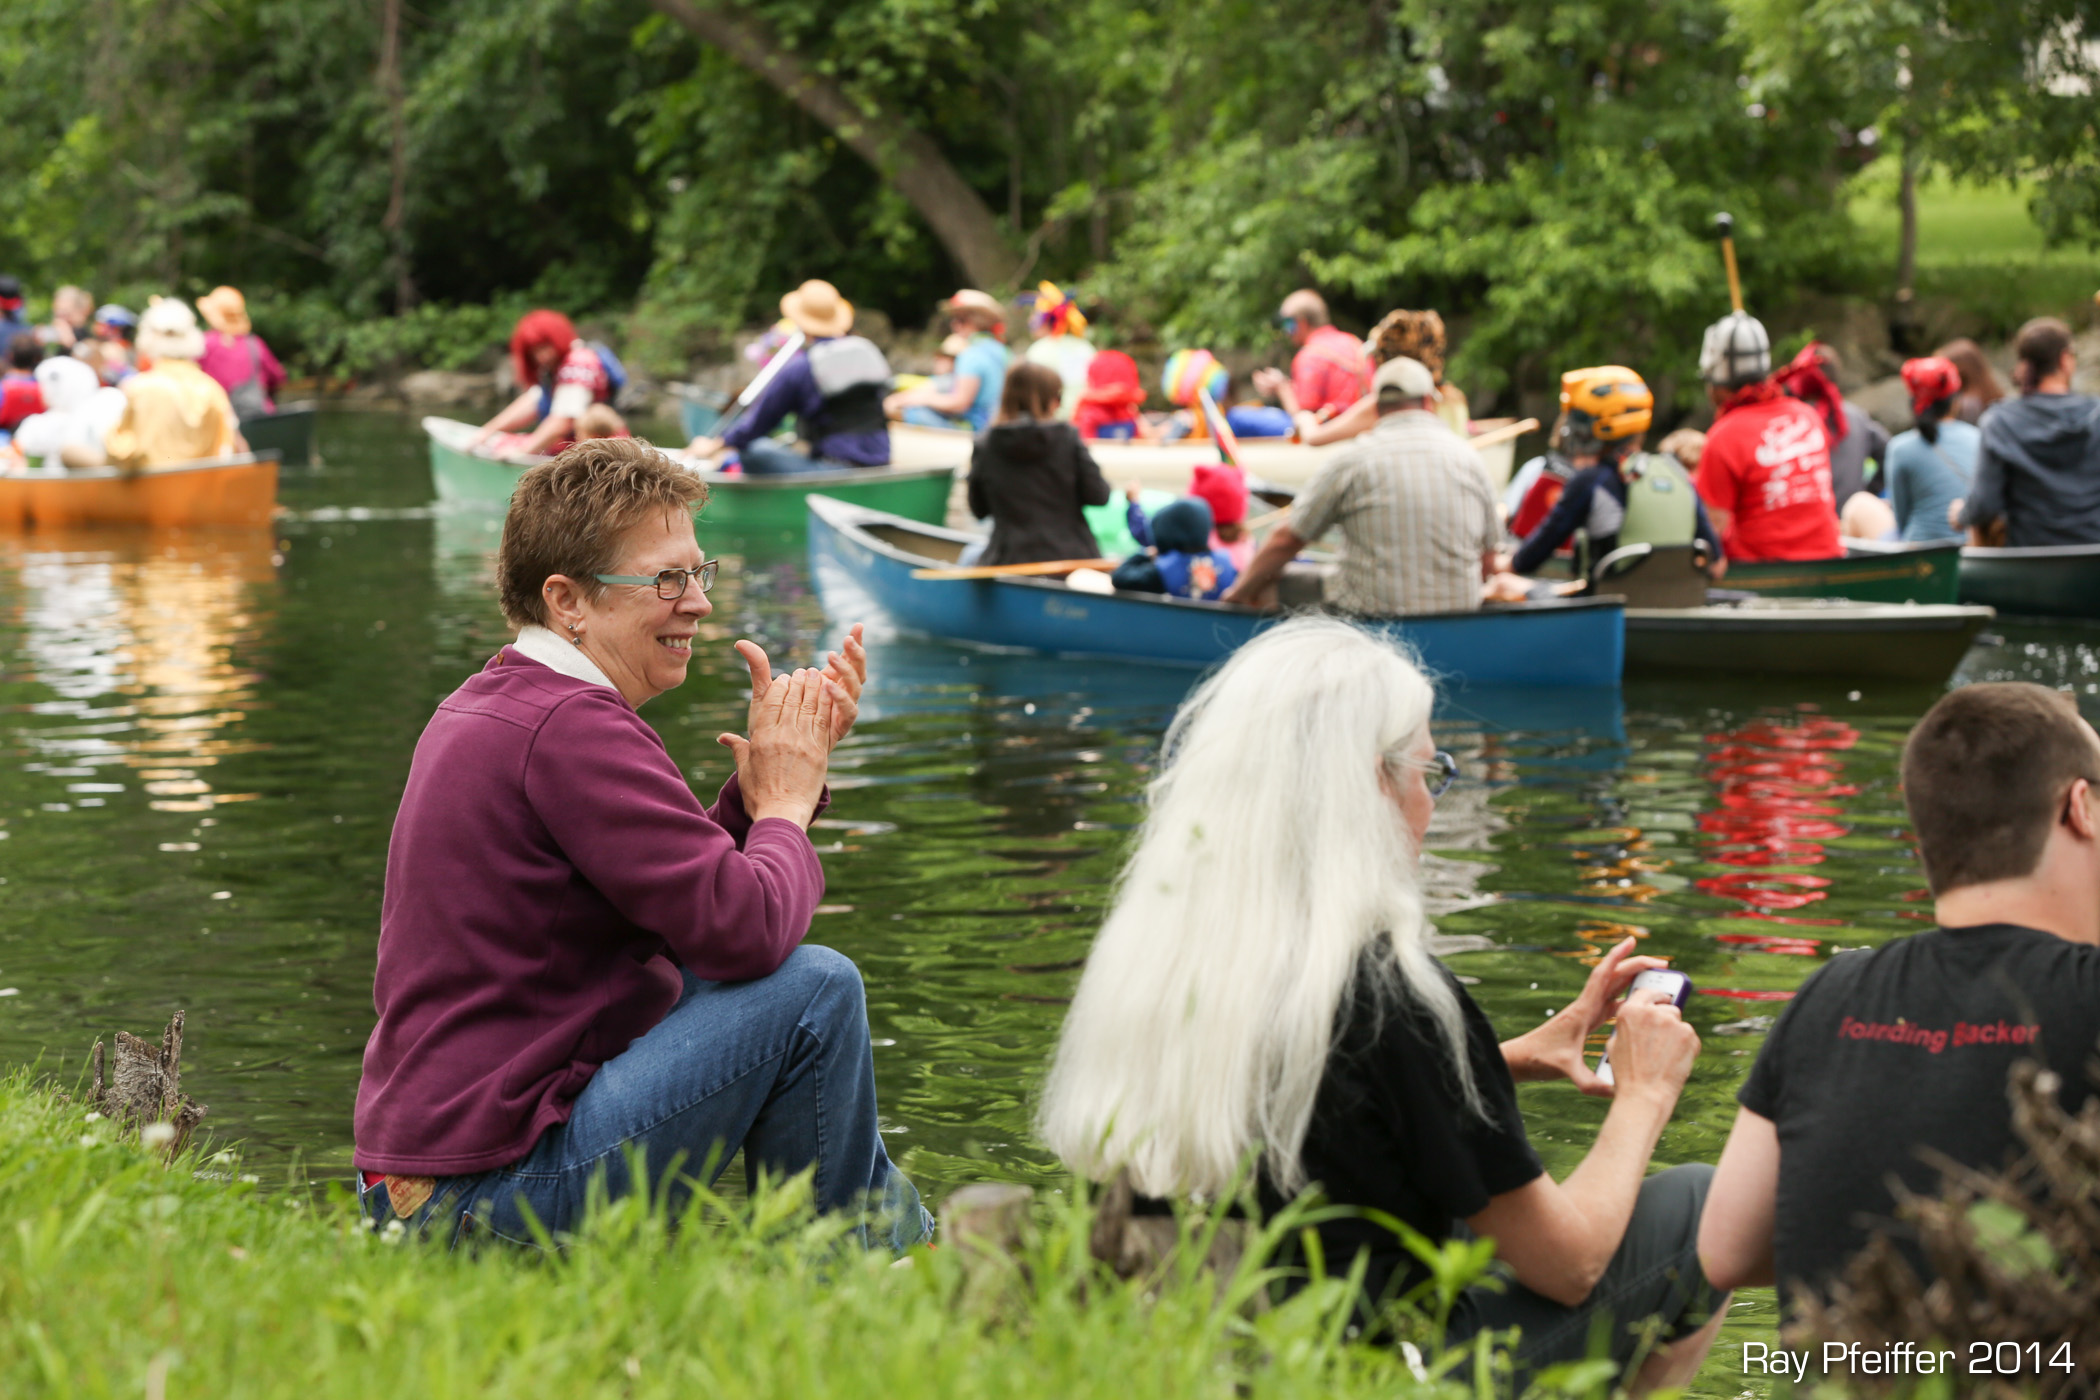 Spectators on the Yahara River banks clapping